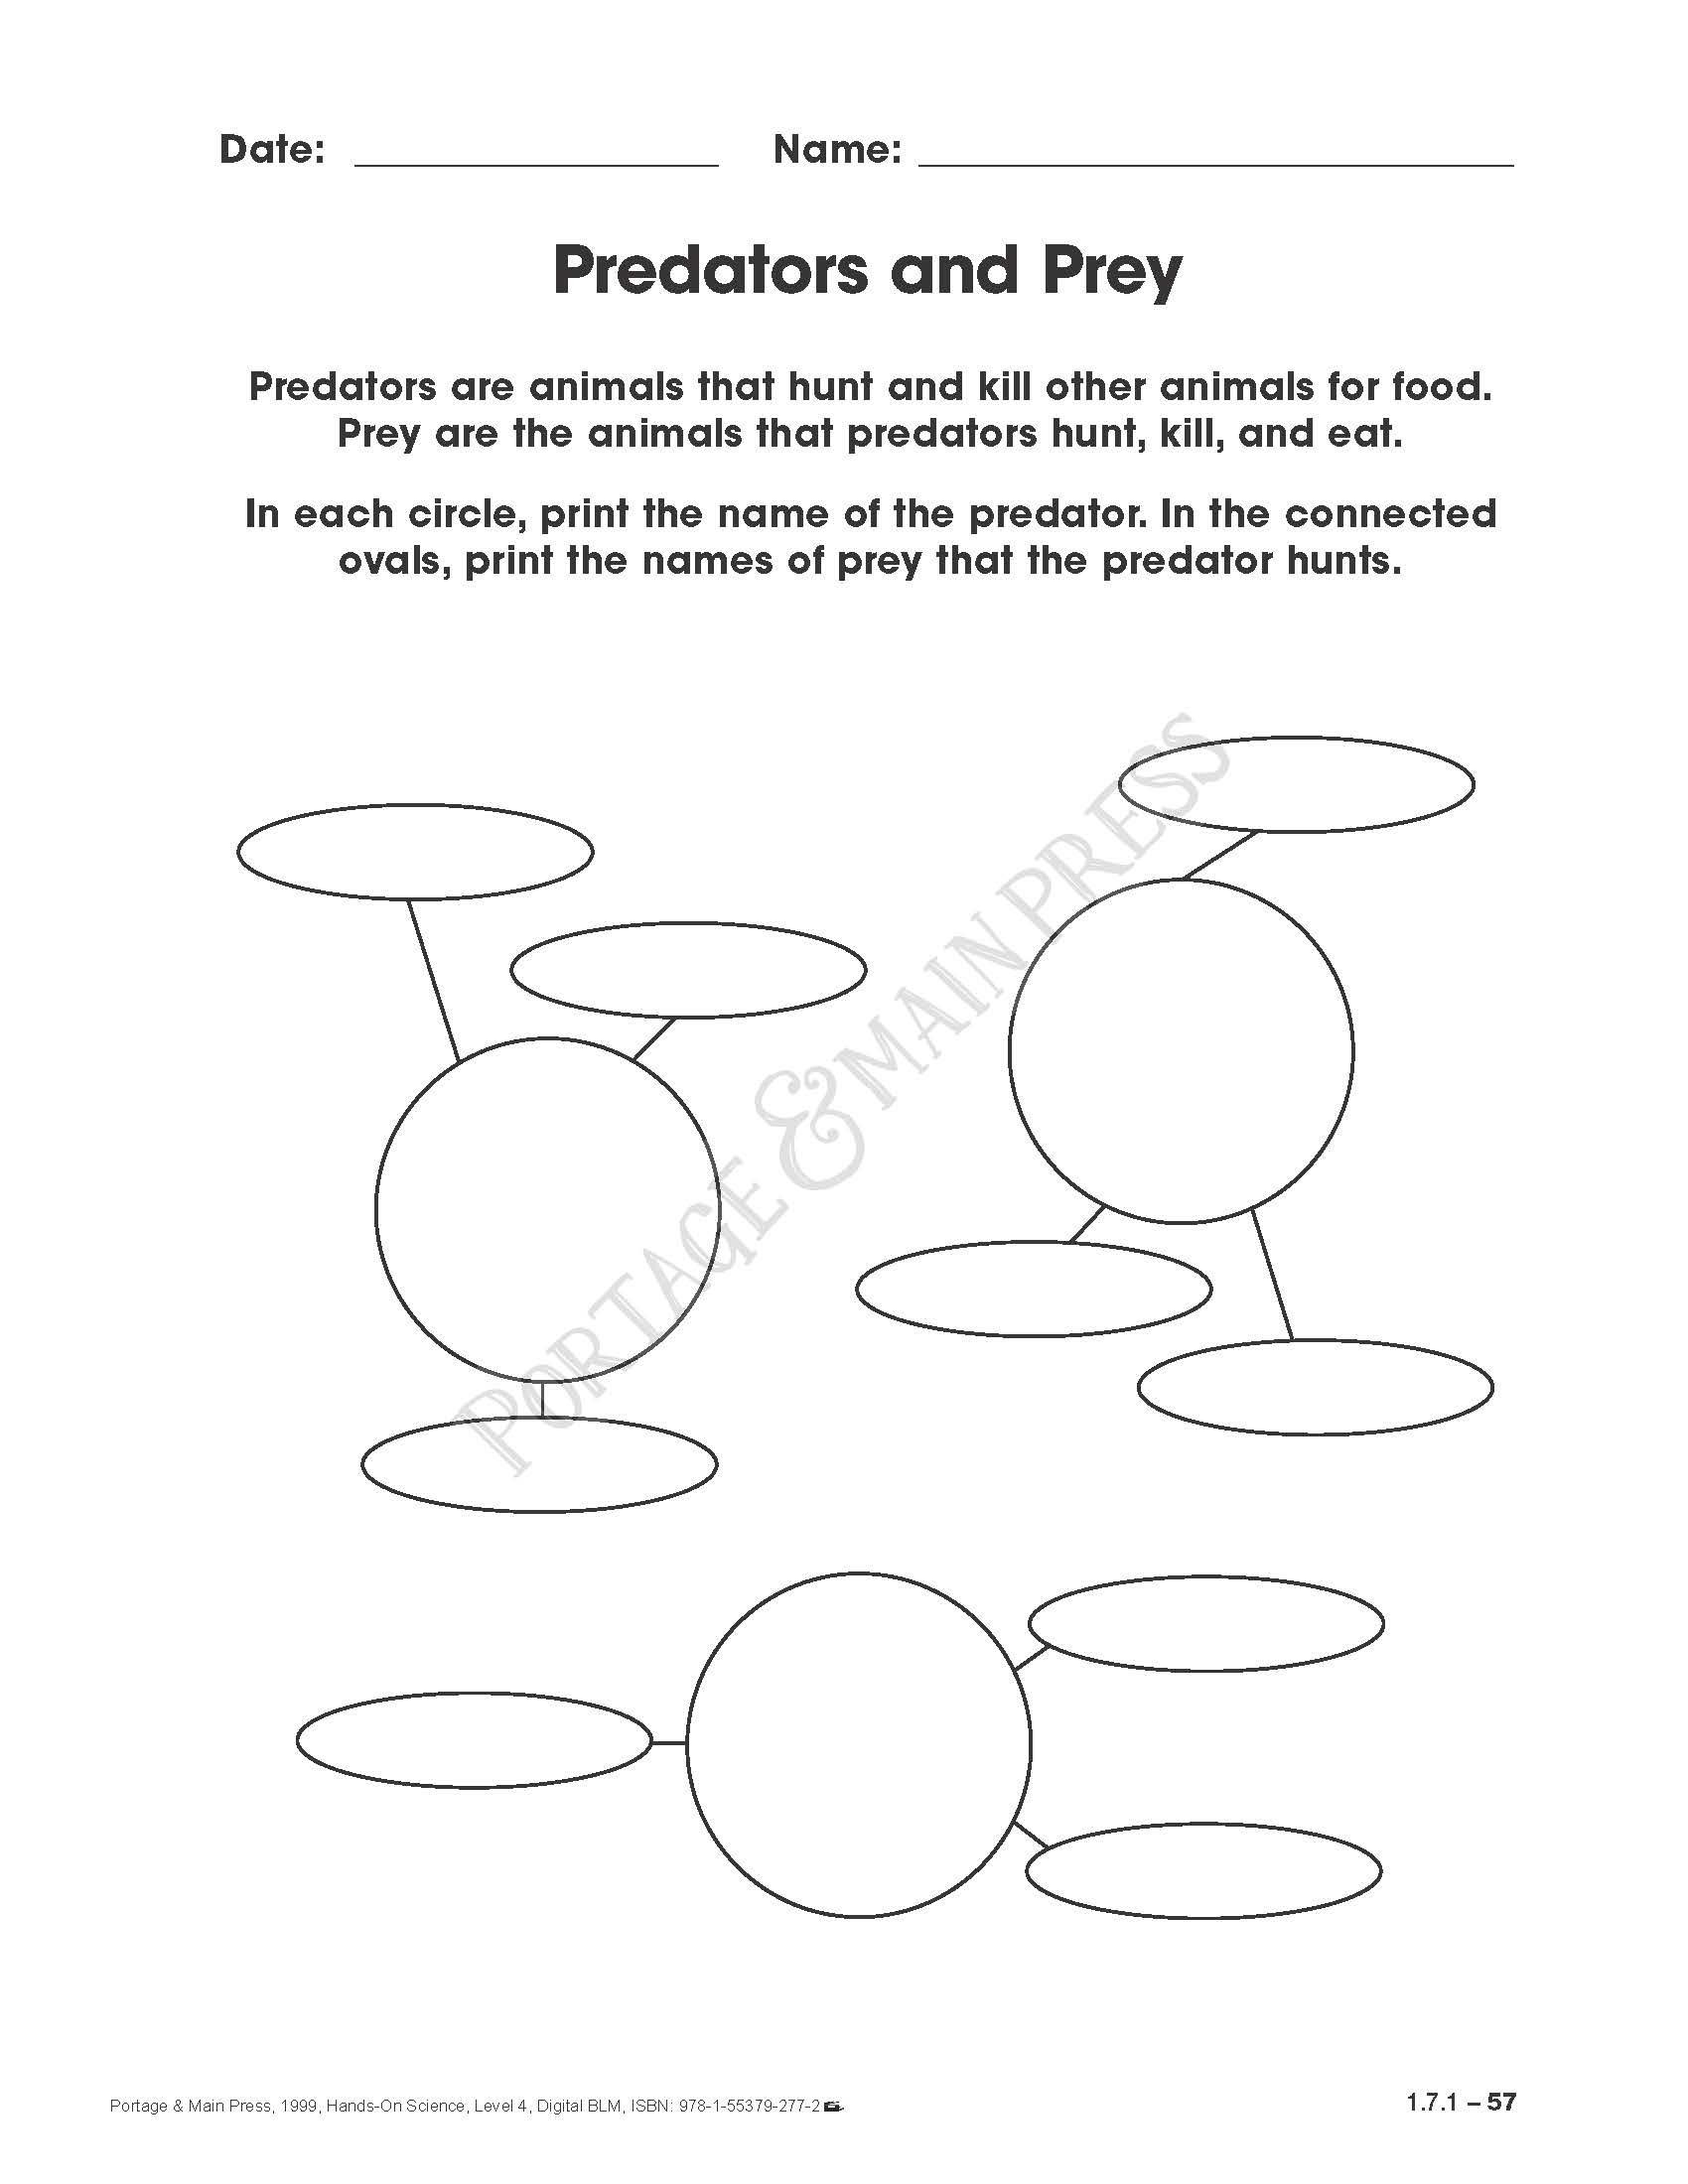 Adaptation Worksheets for Middle School Grade 4 Science Predators and Prey Activity Sheet